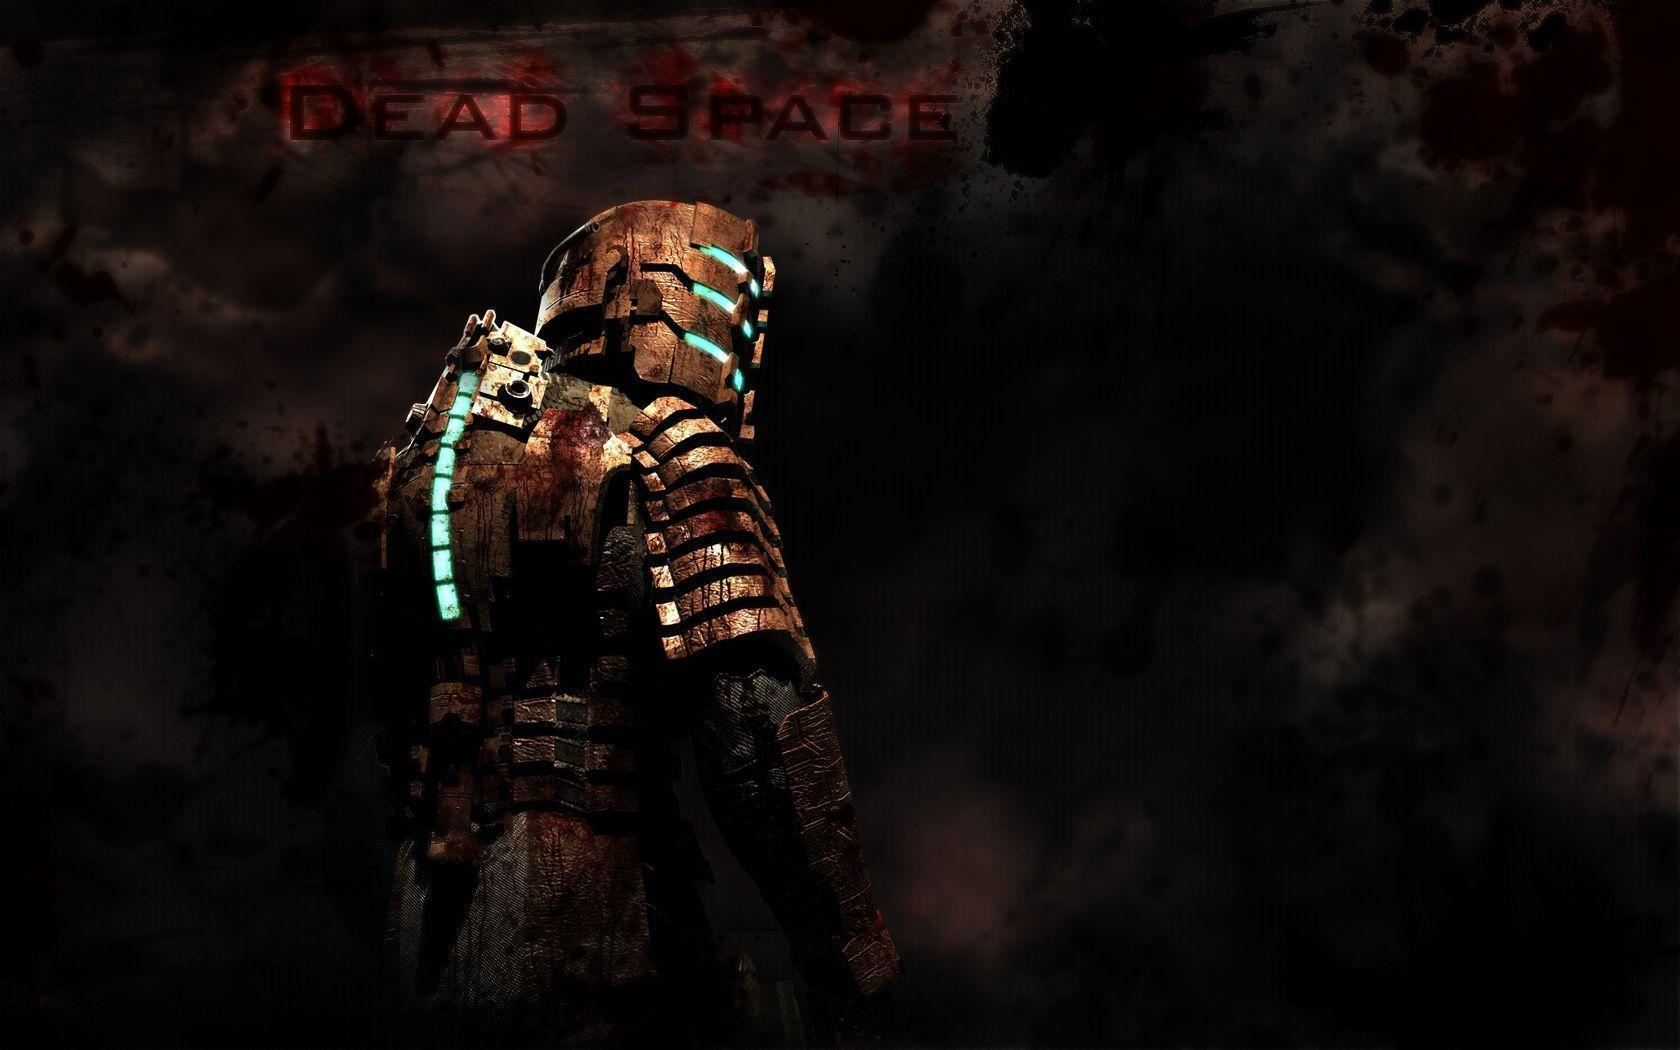 Dead Space Wallpapers Wallpaper Cave